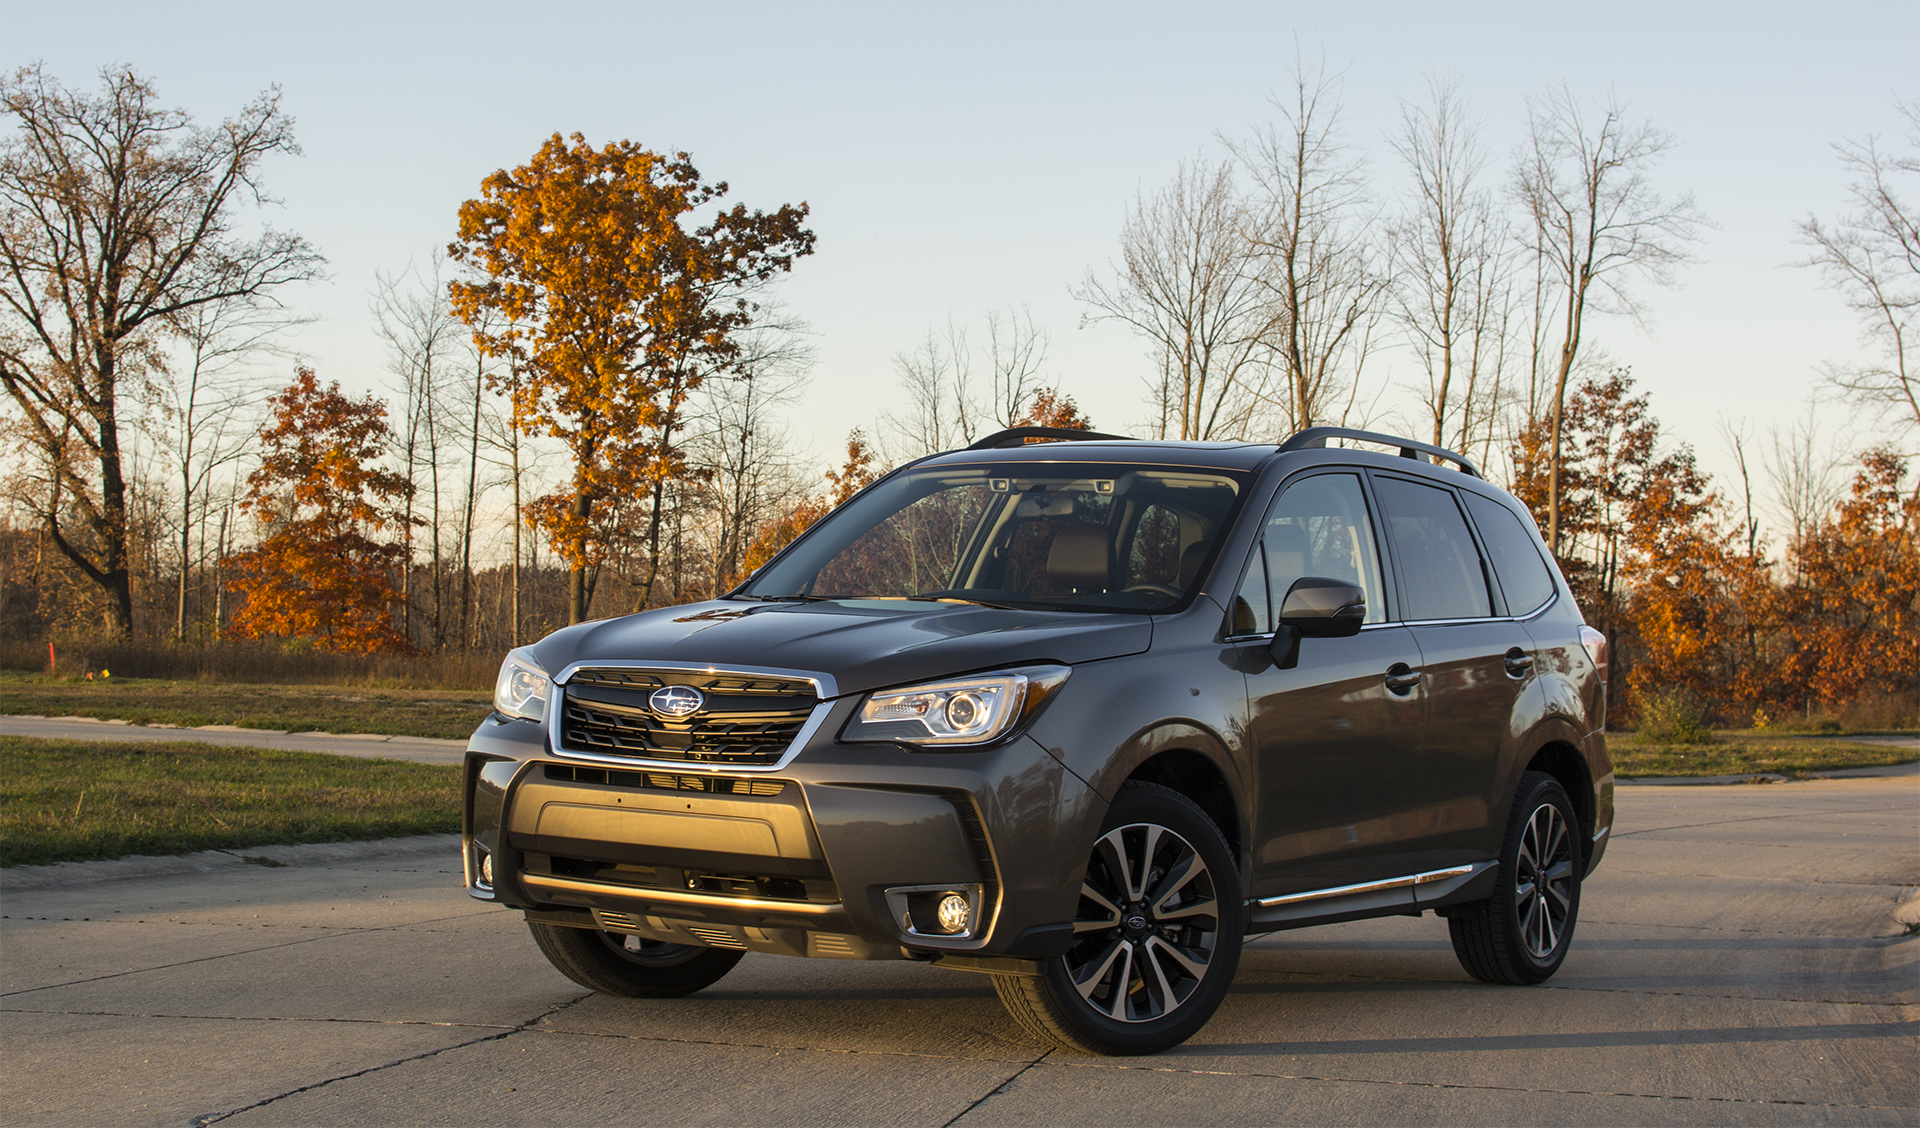 review 2017 subaru forester tries to stay ahead of the crossover pack. Black Bedroom Furniture Sets. Home Design Ideas